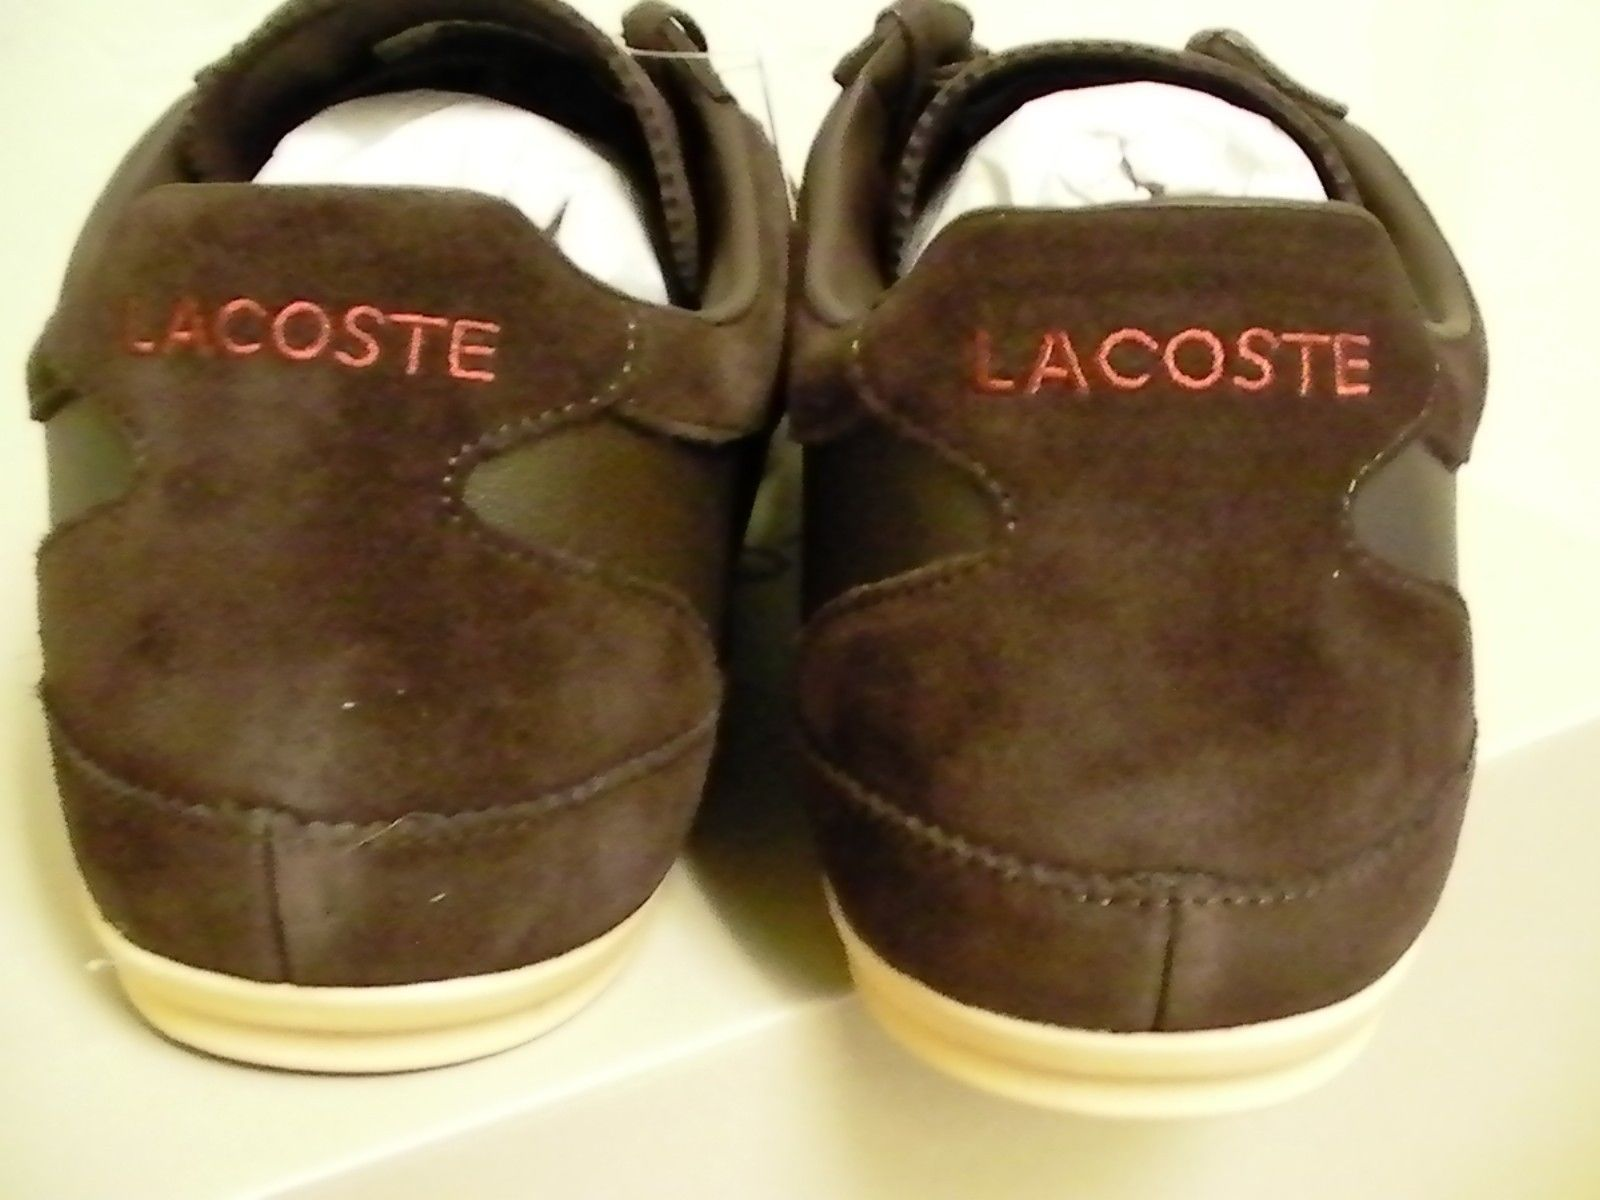 24314c960d Lacoste shoes misano 22 spm leather/suede dark brown size 8.5 us